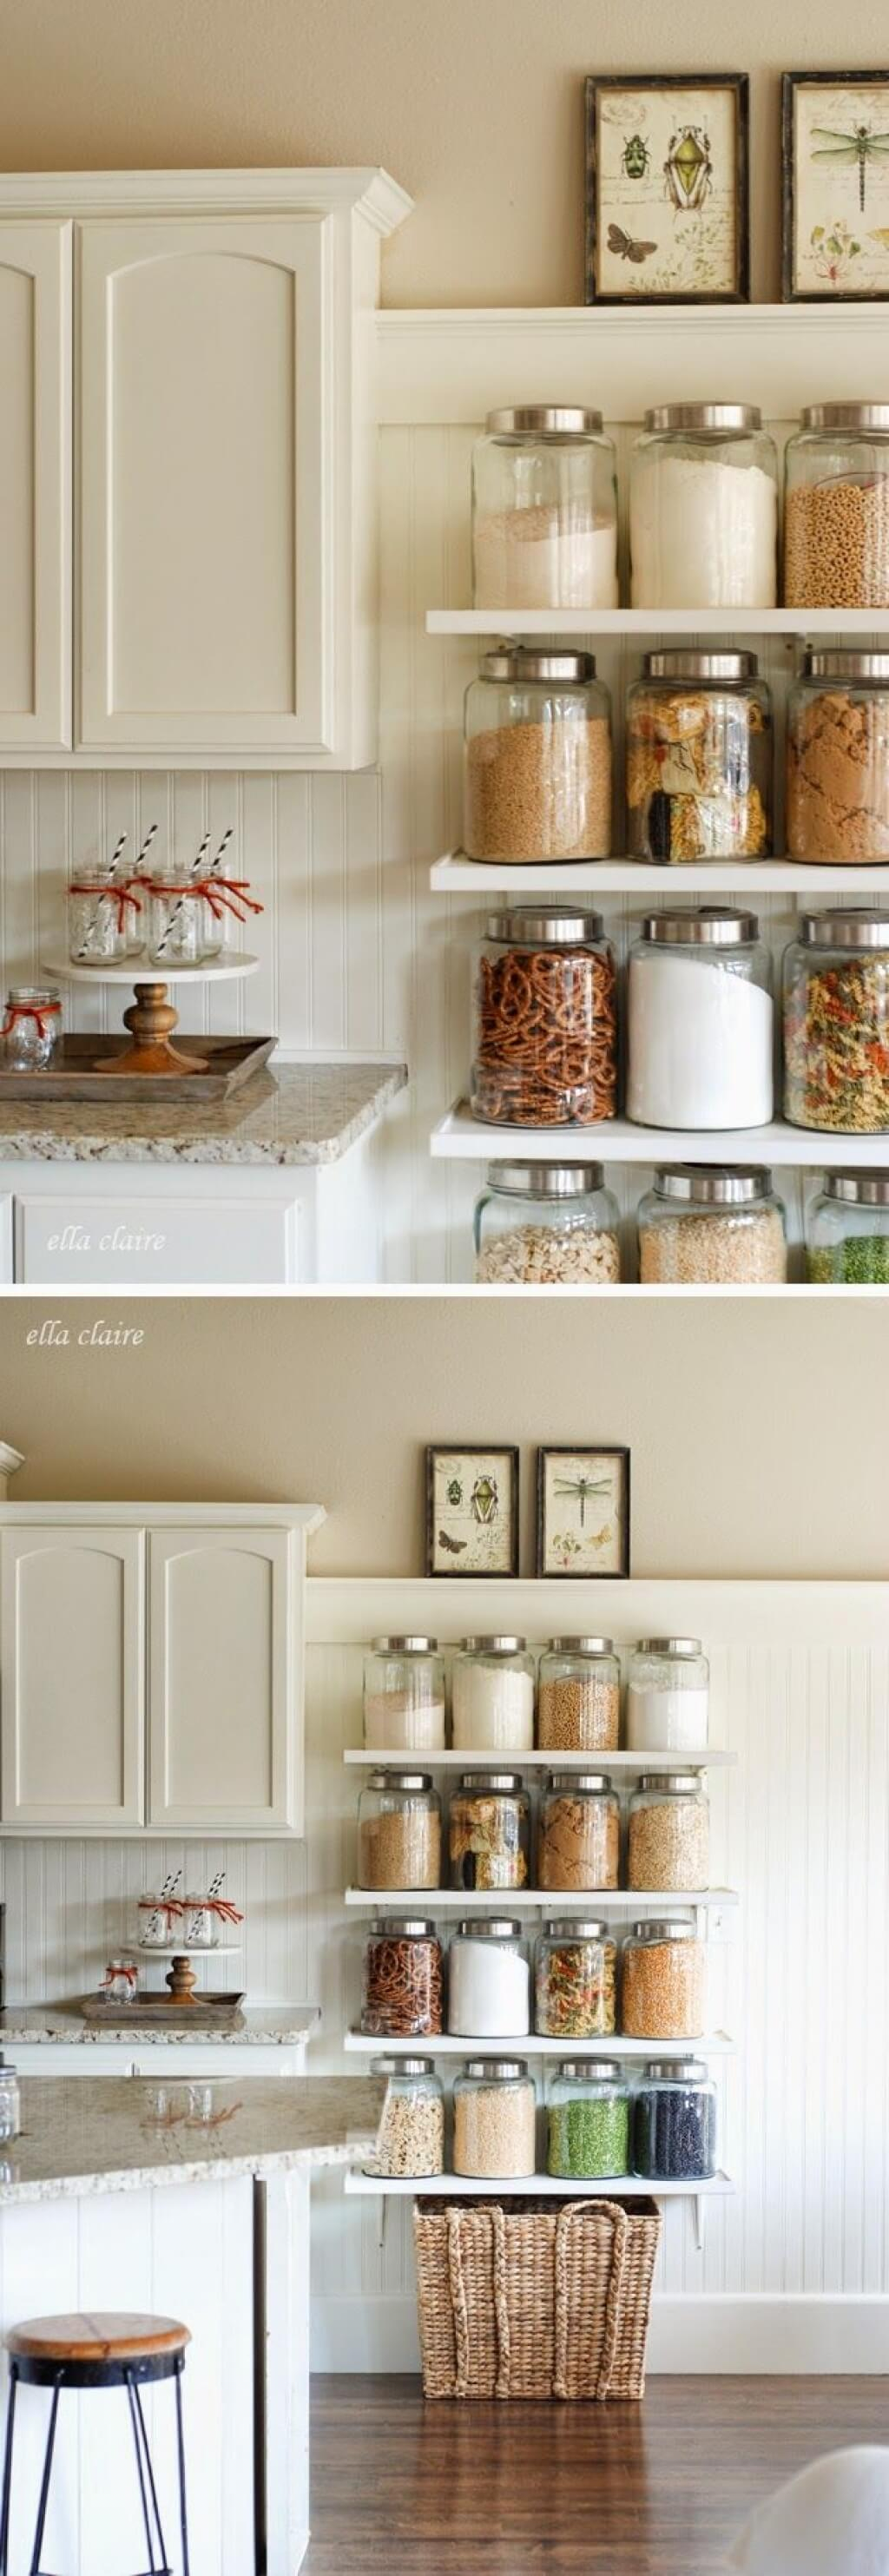 Small Kitchen Storage Organization